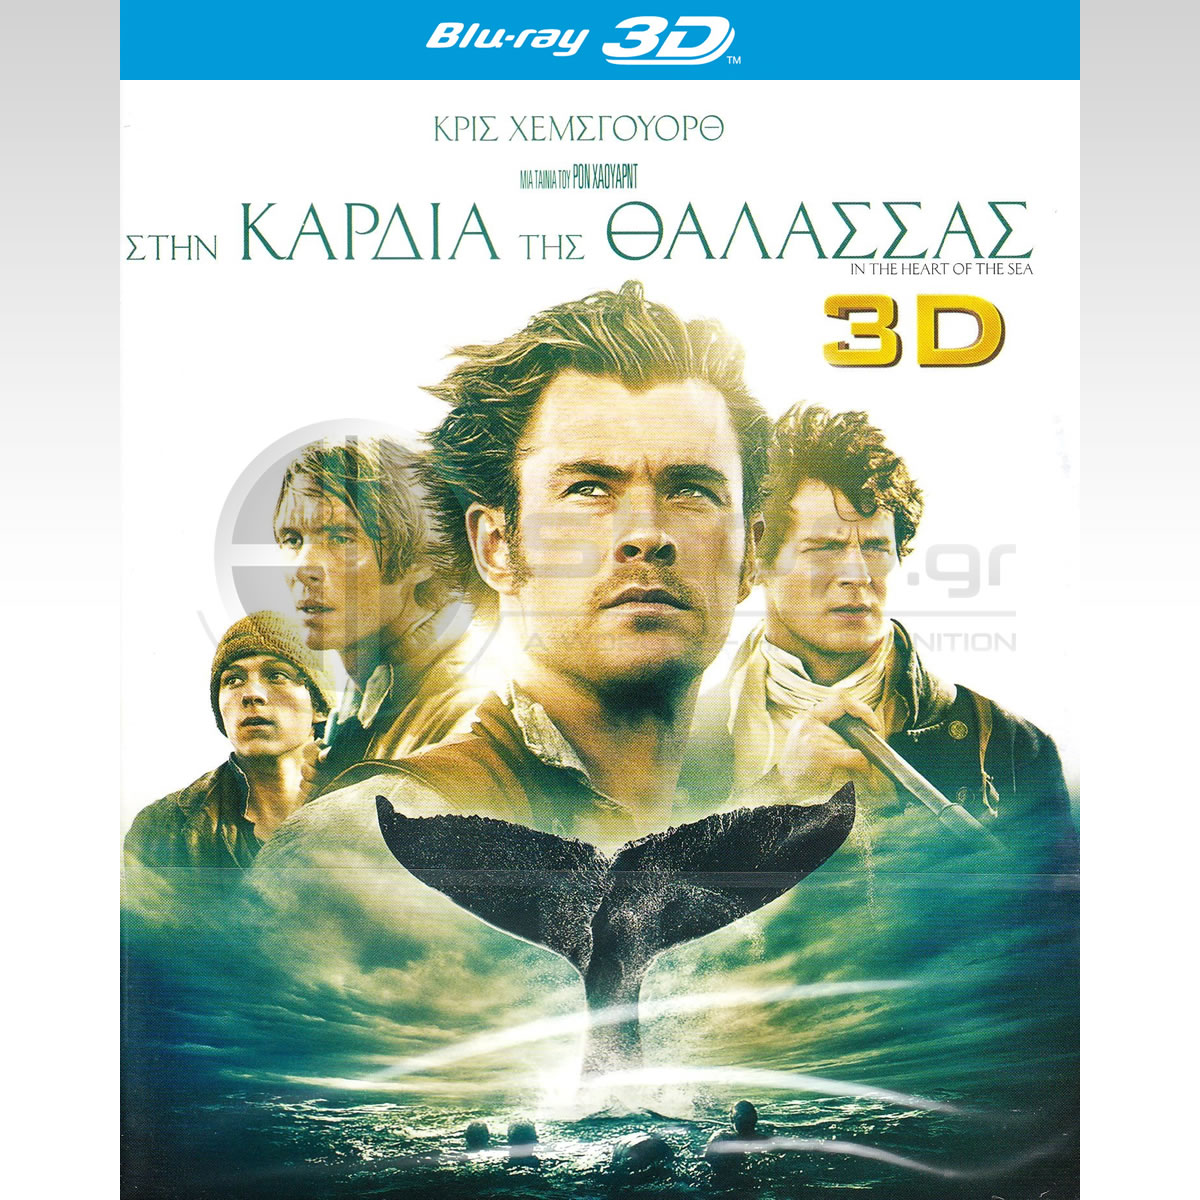 IN THE HEART OF THE SEA 3D - ΣΤΗΝ ΚΑΡΔΙΑ ΤΗΣ ΘΑΛΑΣΣΑΣ 3D (BLU-RAY 3D + BLU-RAY)